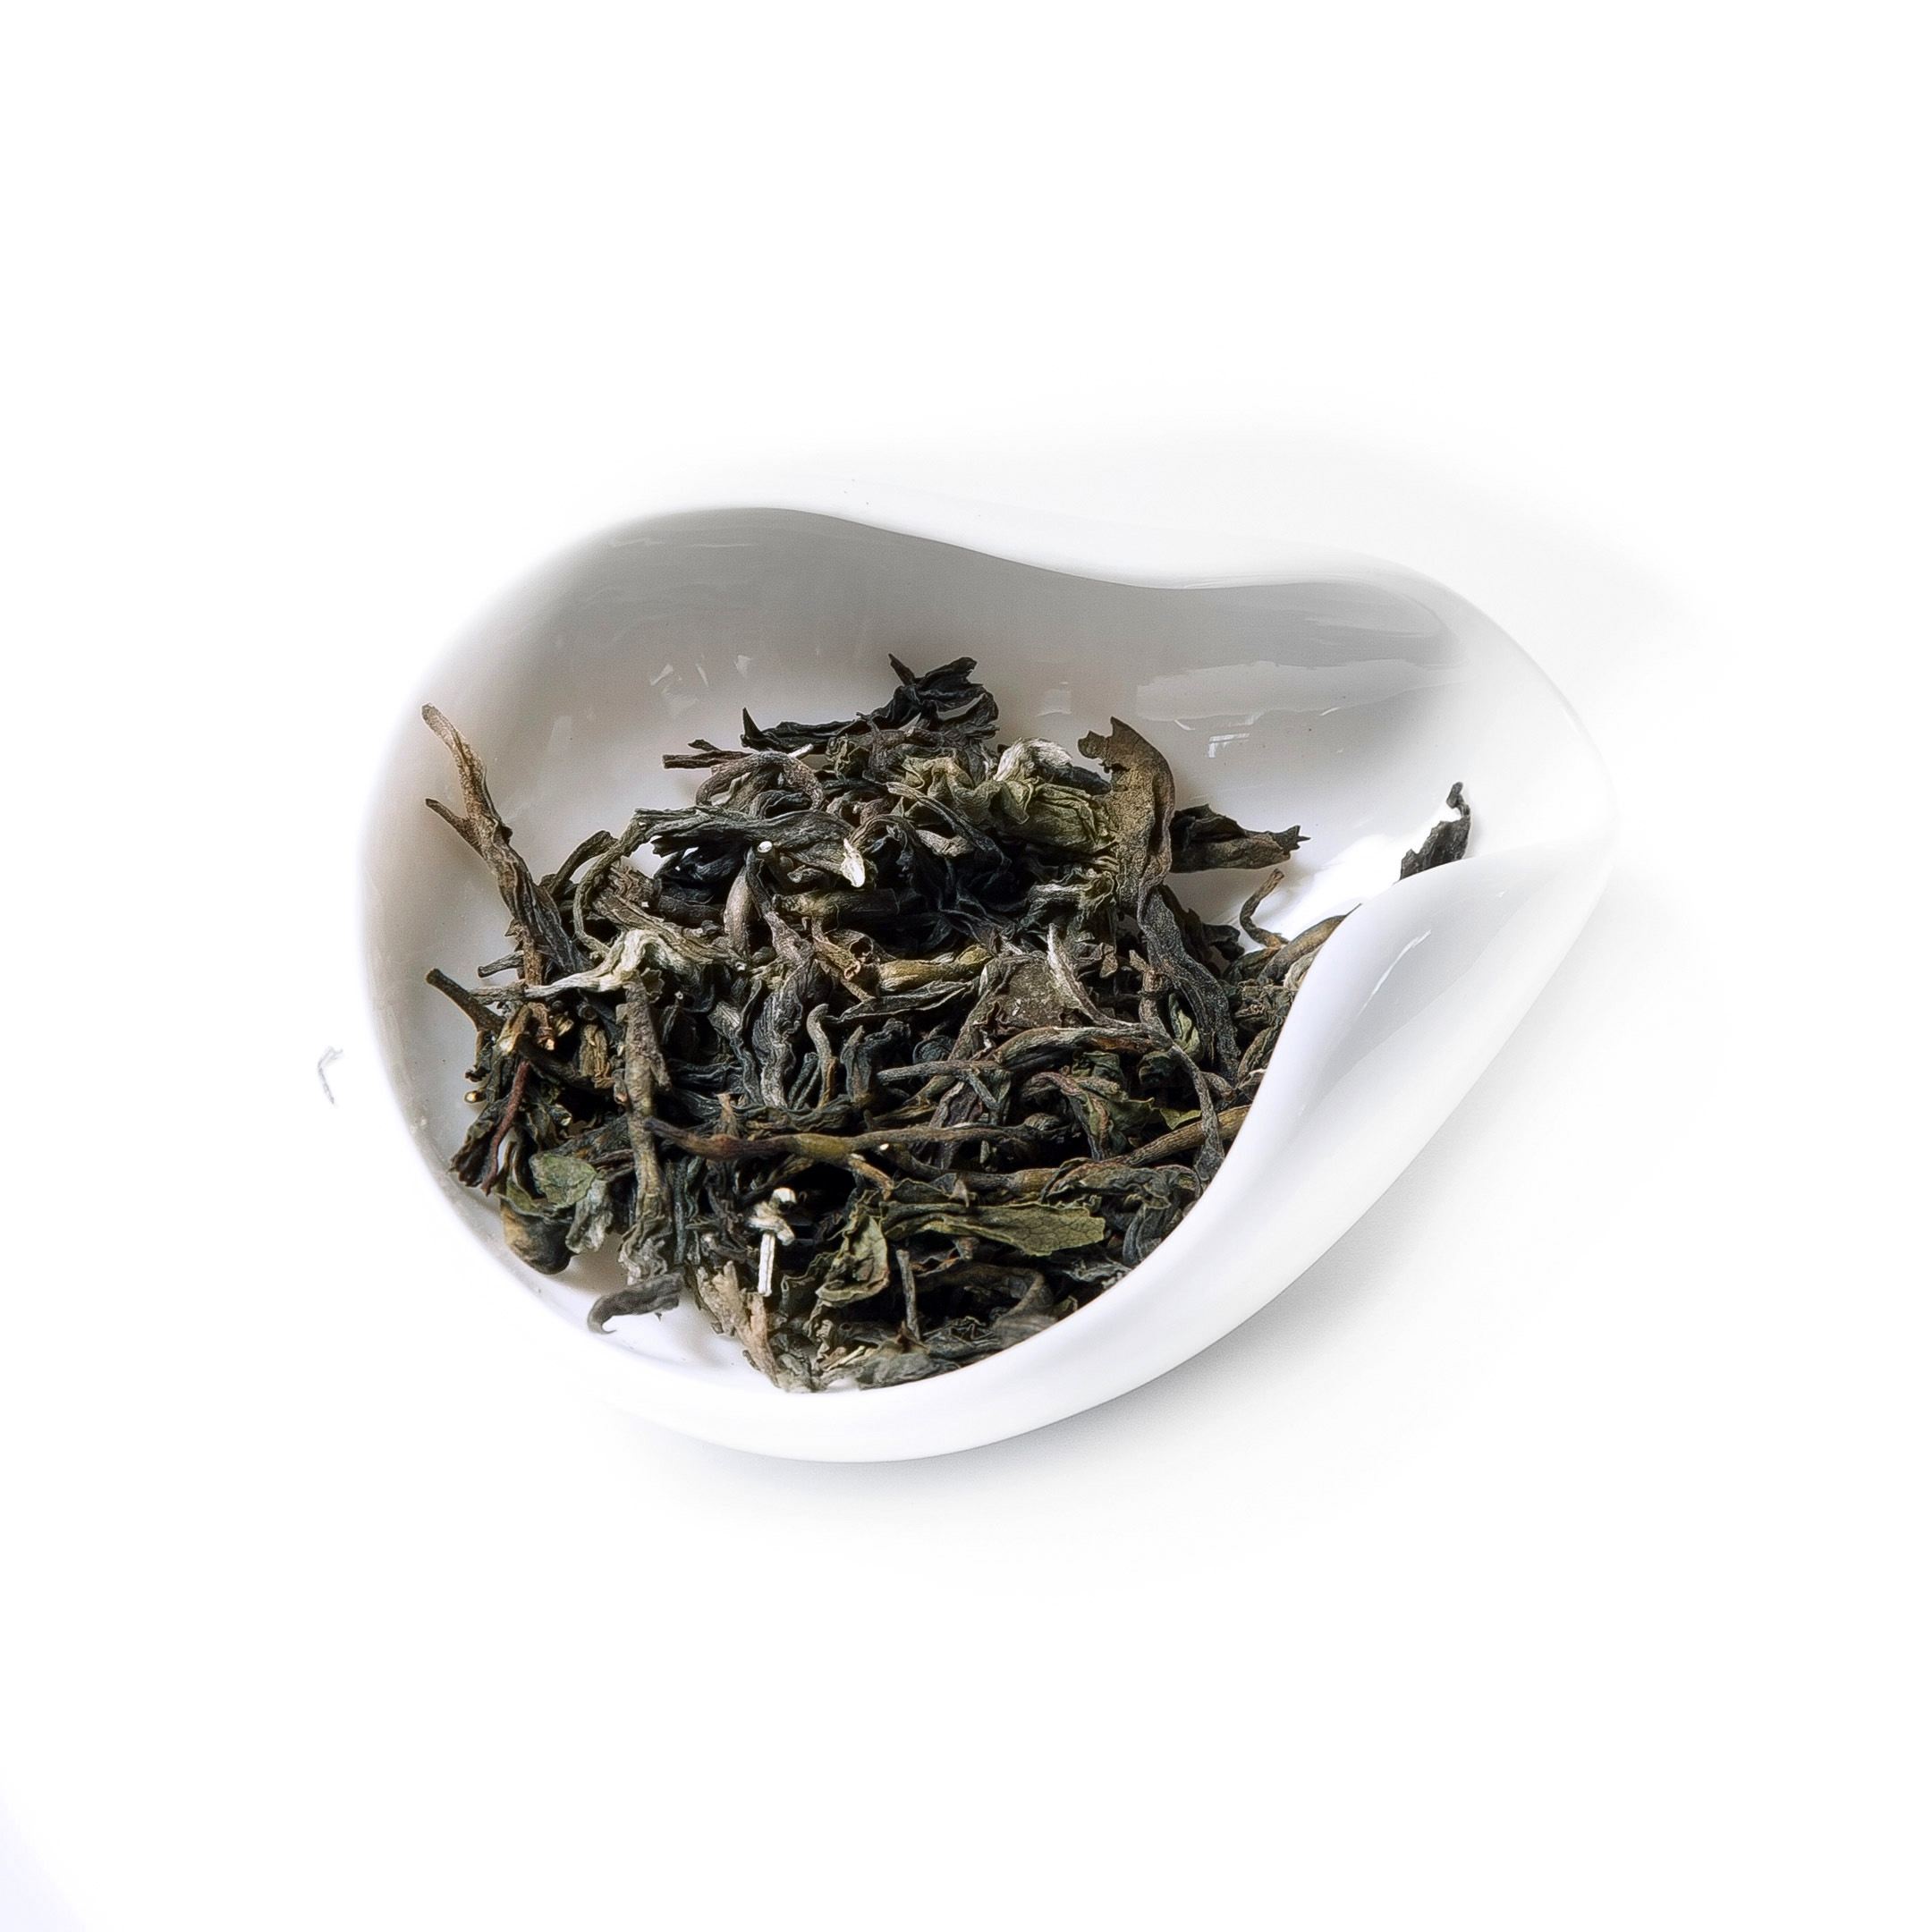 Darjeeling Gopaldhara Moondrop first flush